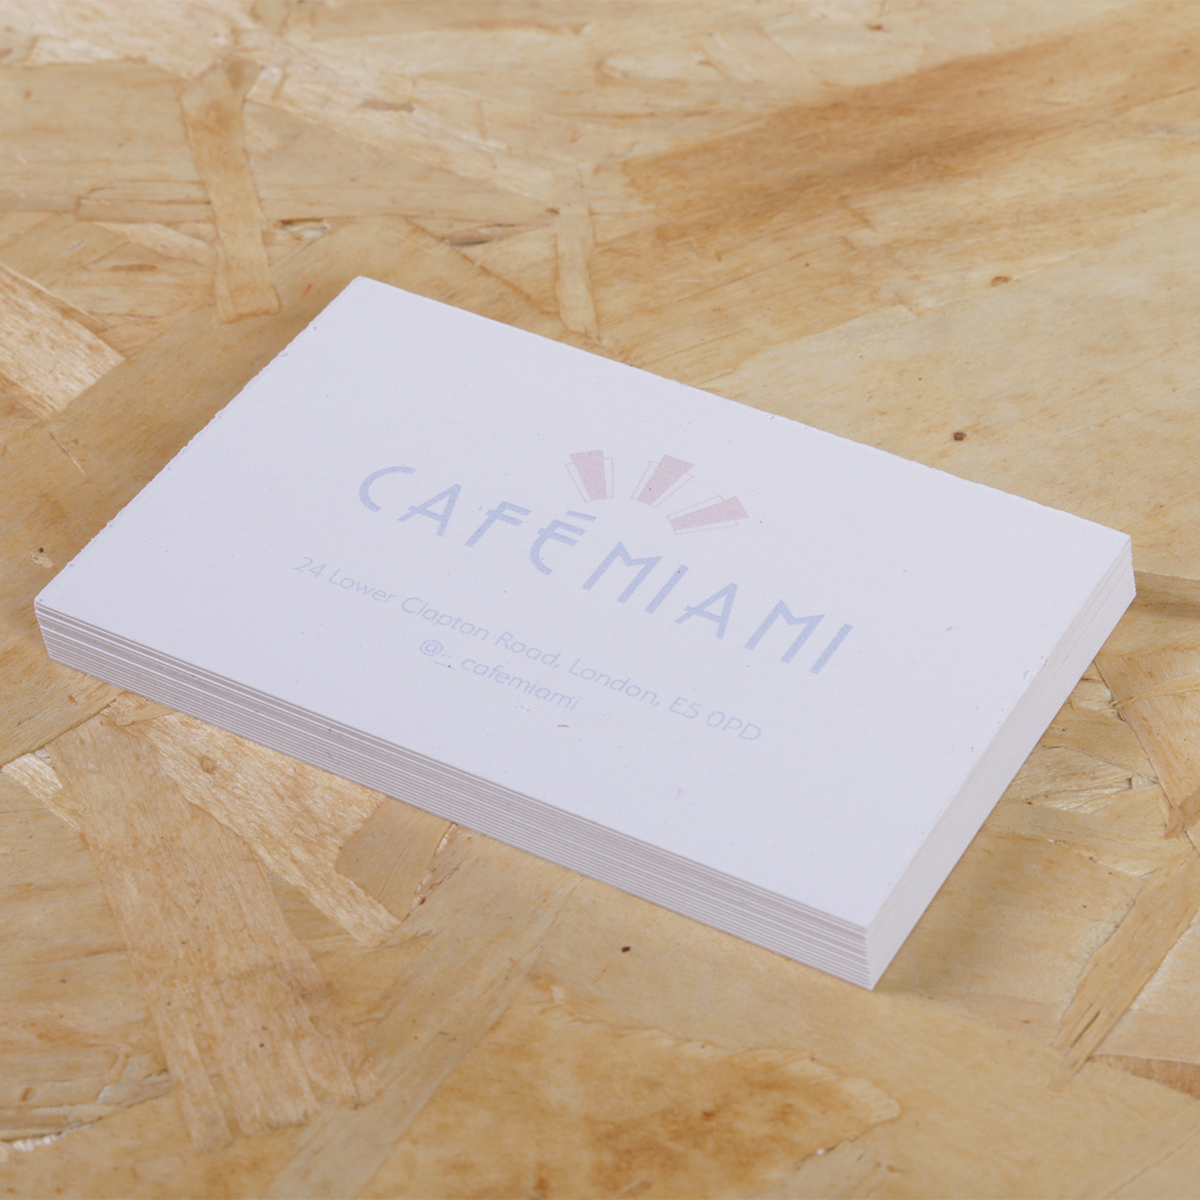 5 Alternative uses for business cards - Awesome Merchandise Awesome ...